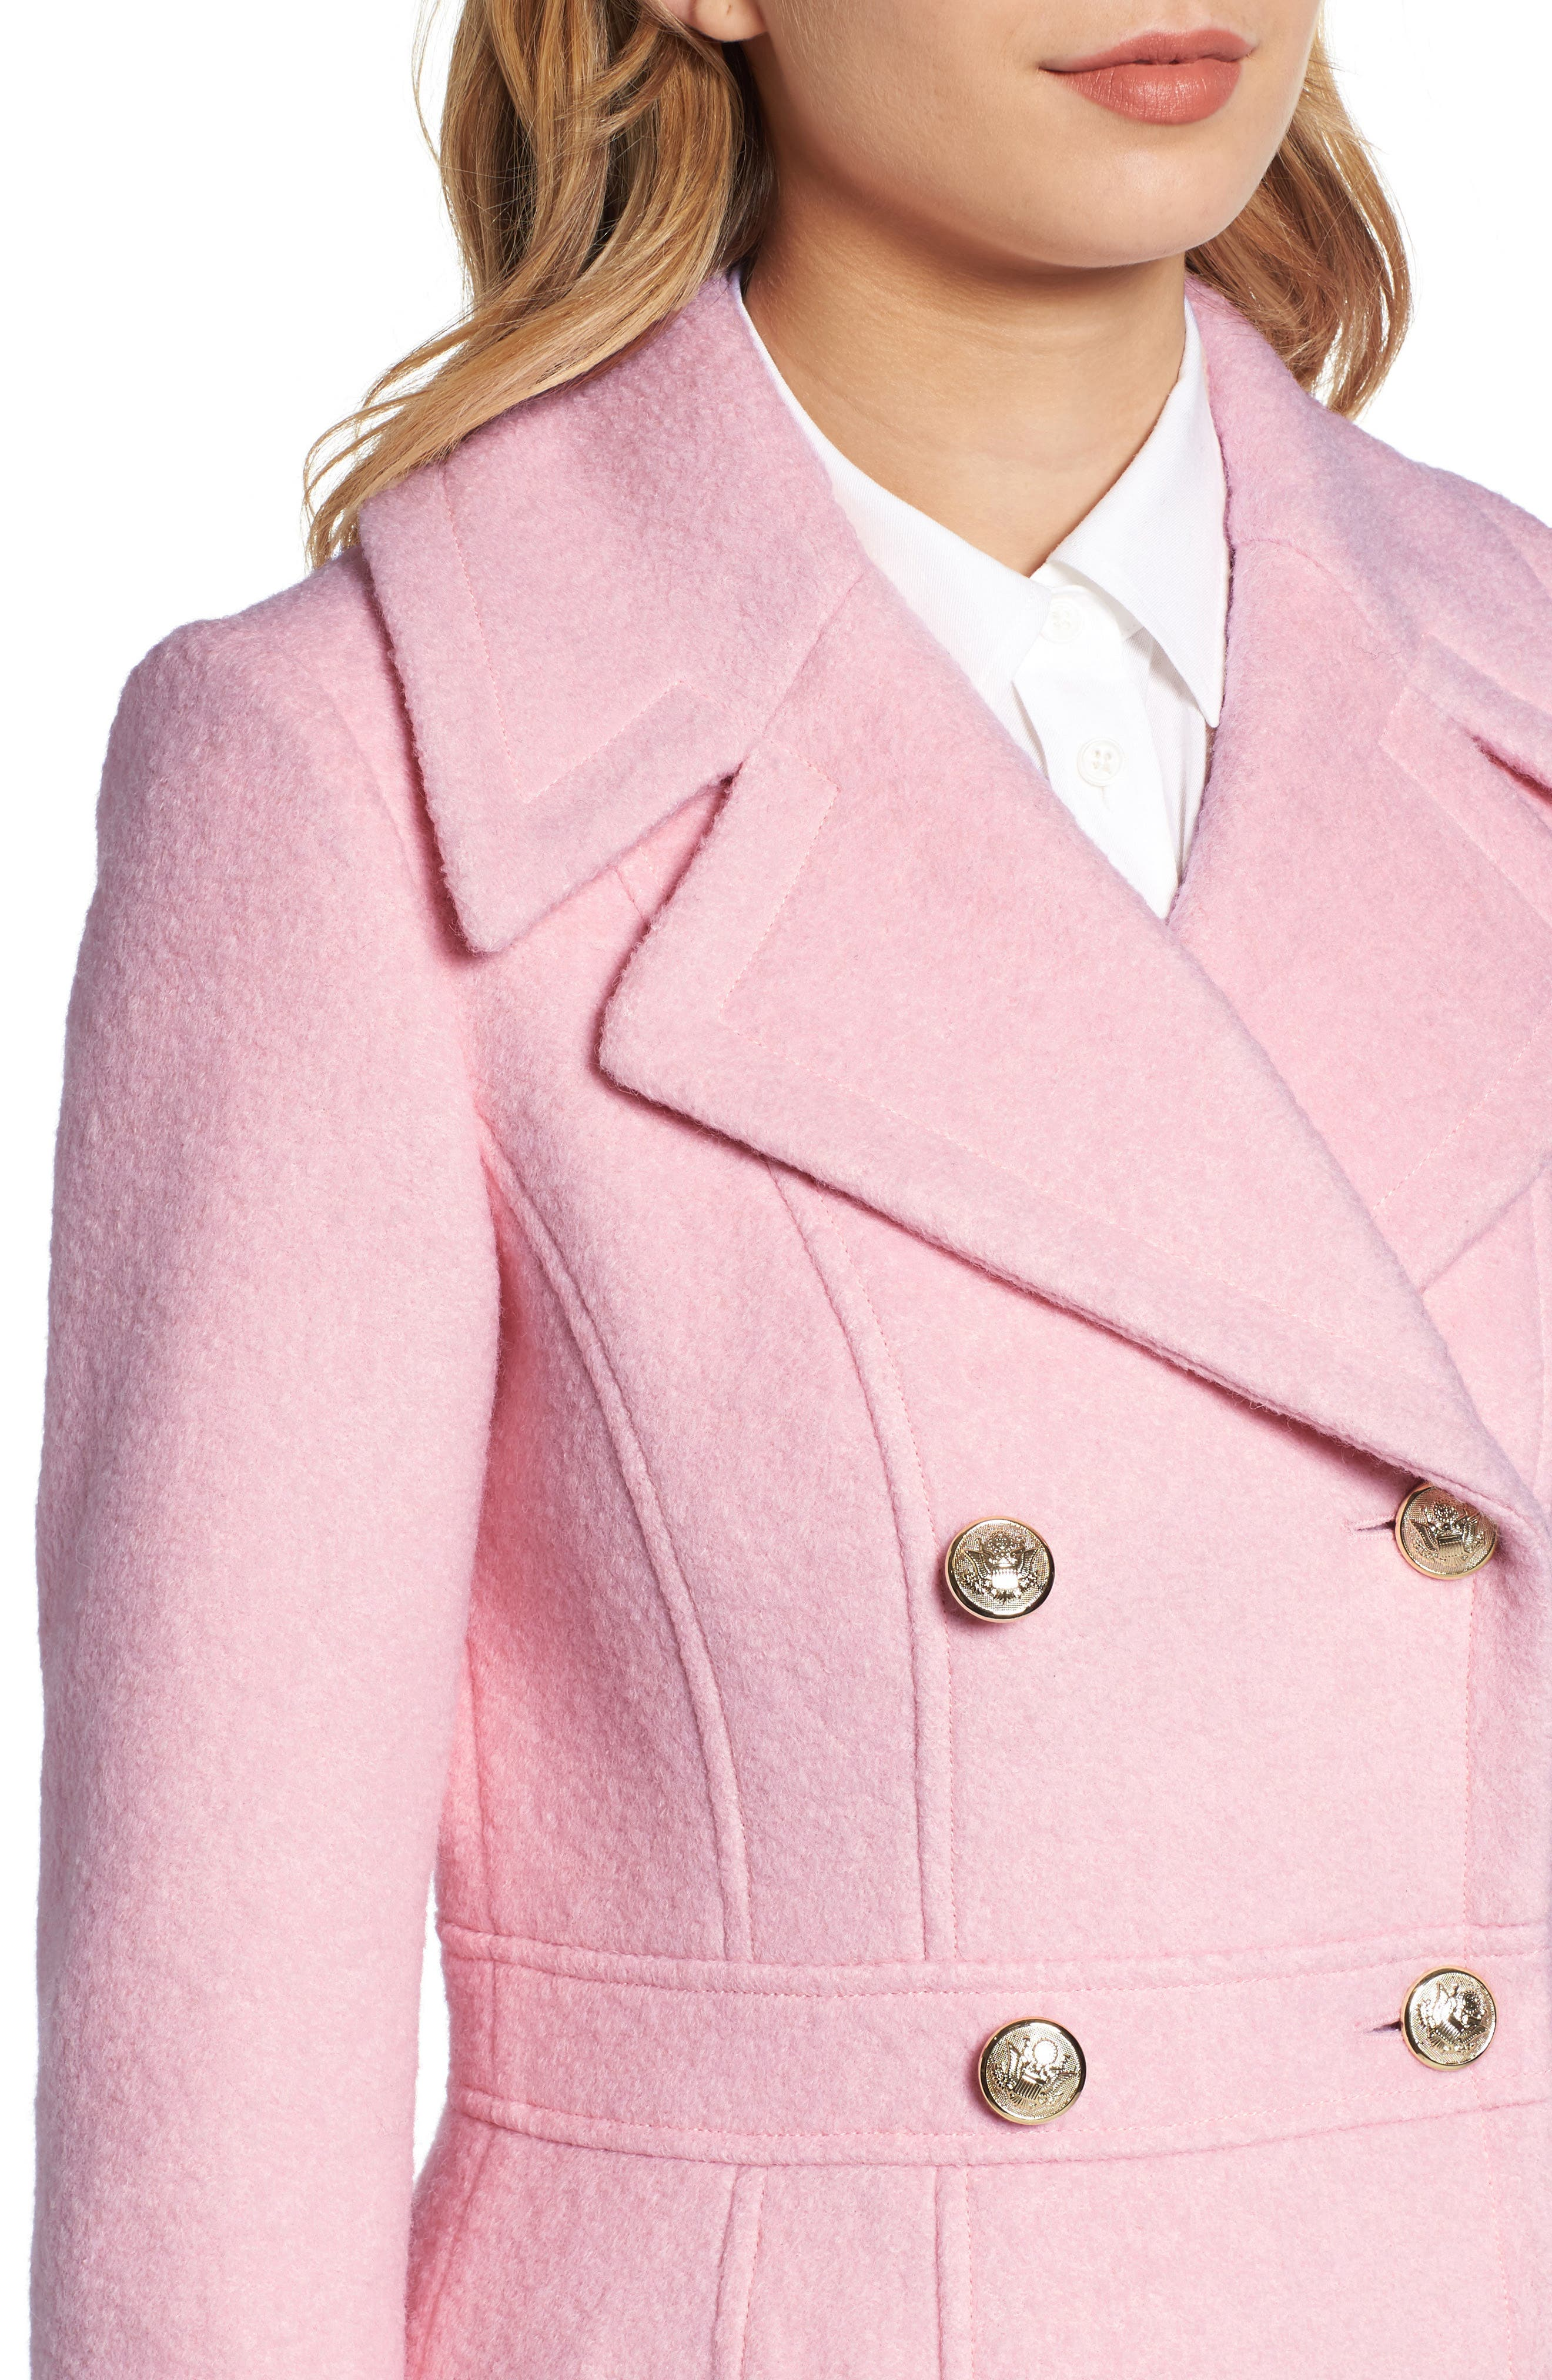 Double Breasted Wool Blend Coat,                             Alternate thumbnail 4, color,                             Pale Pink